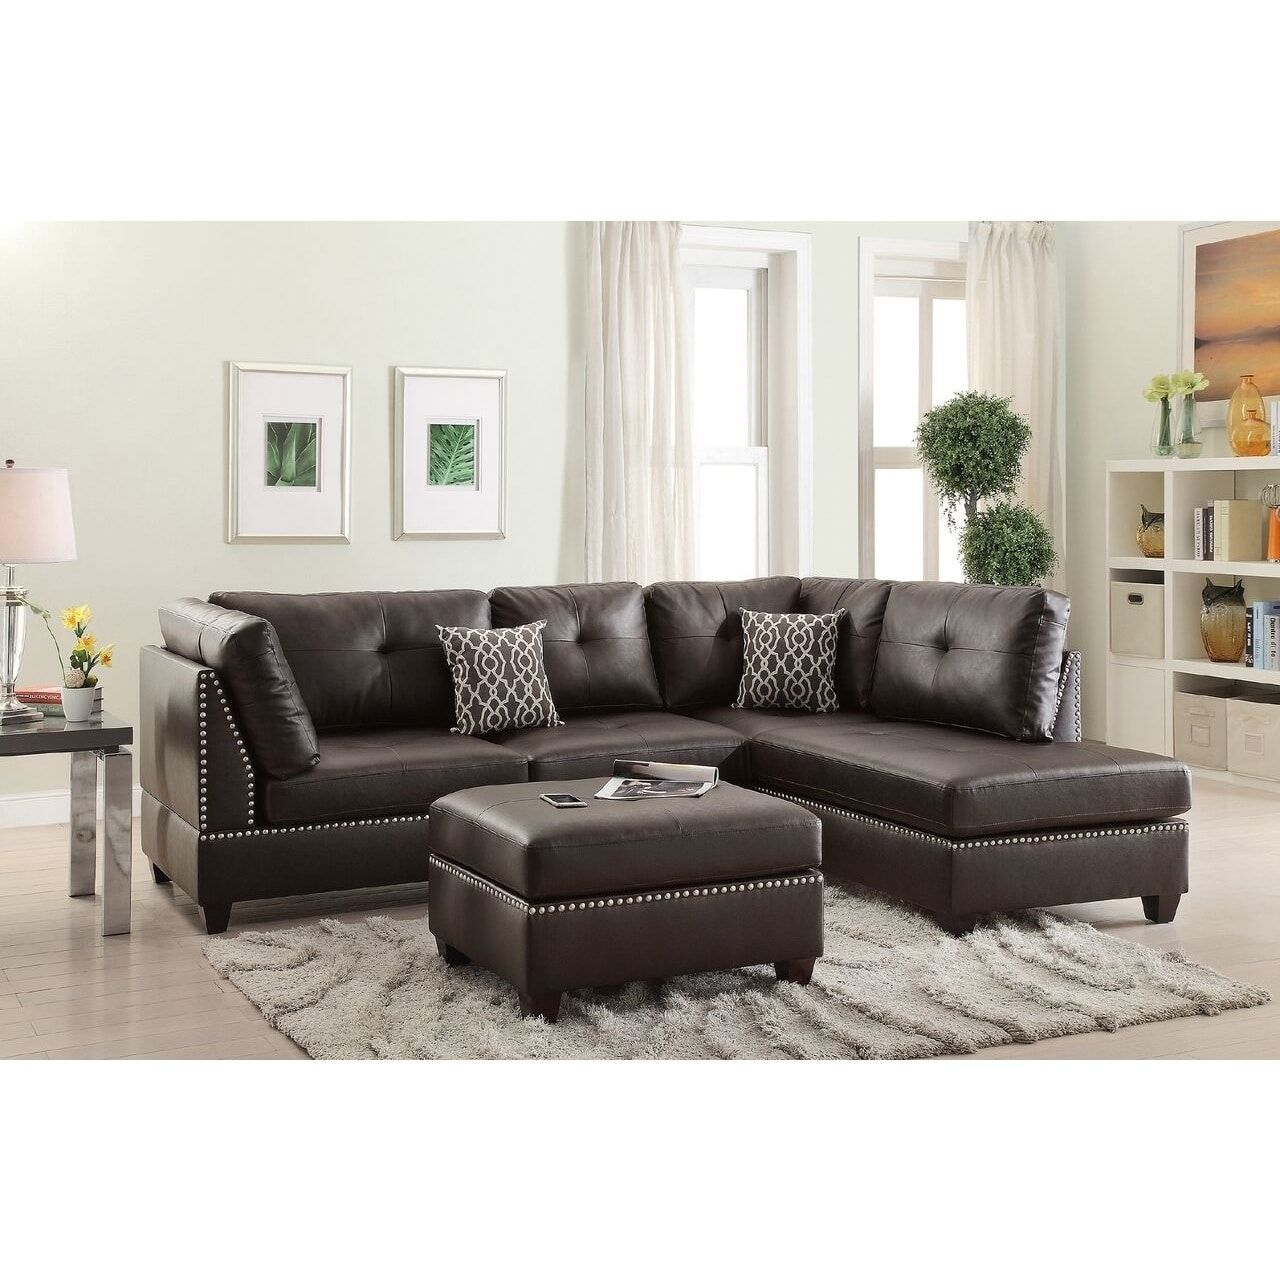 Yerevan Sectional Sofa Upholstered in Bonded Leather ...